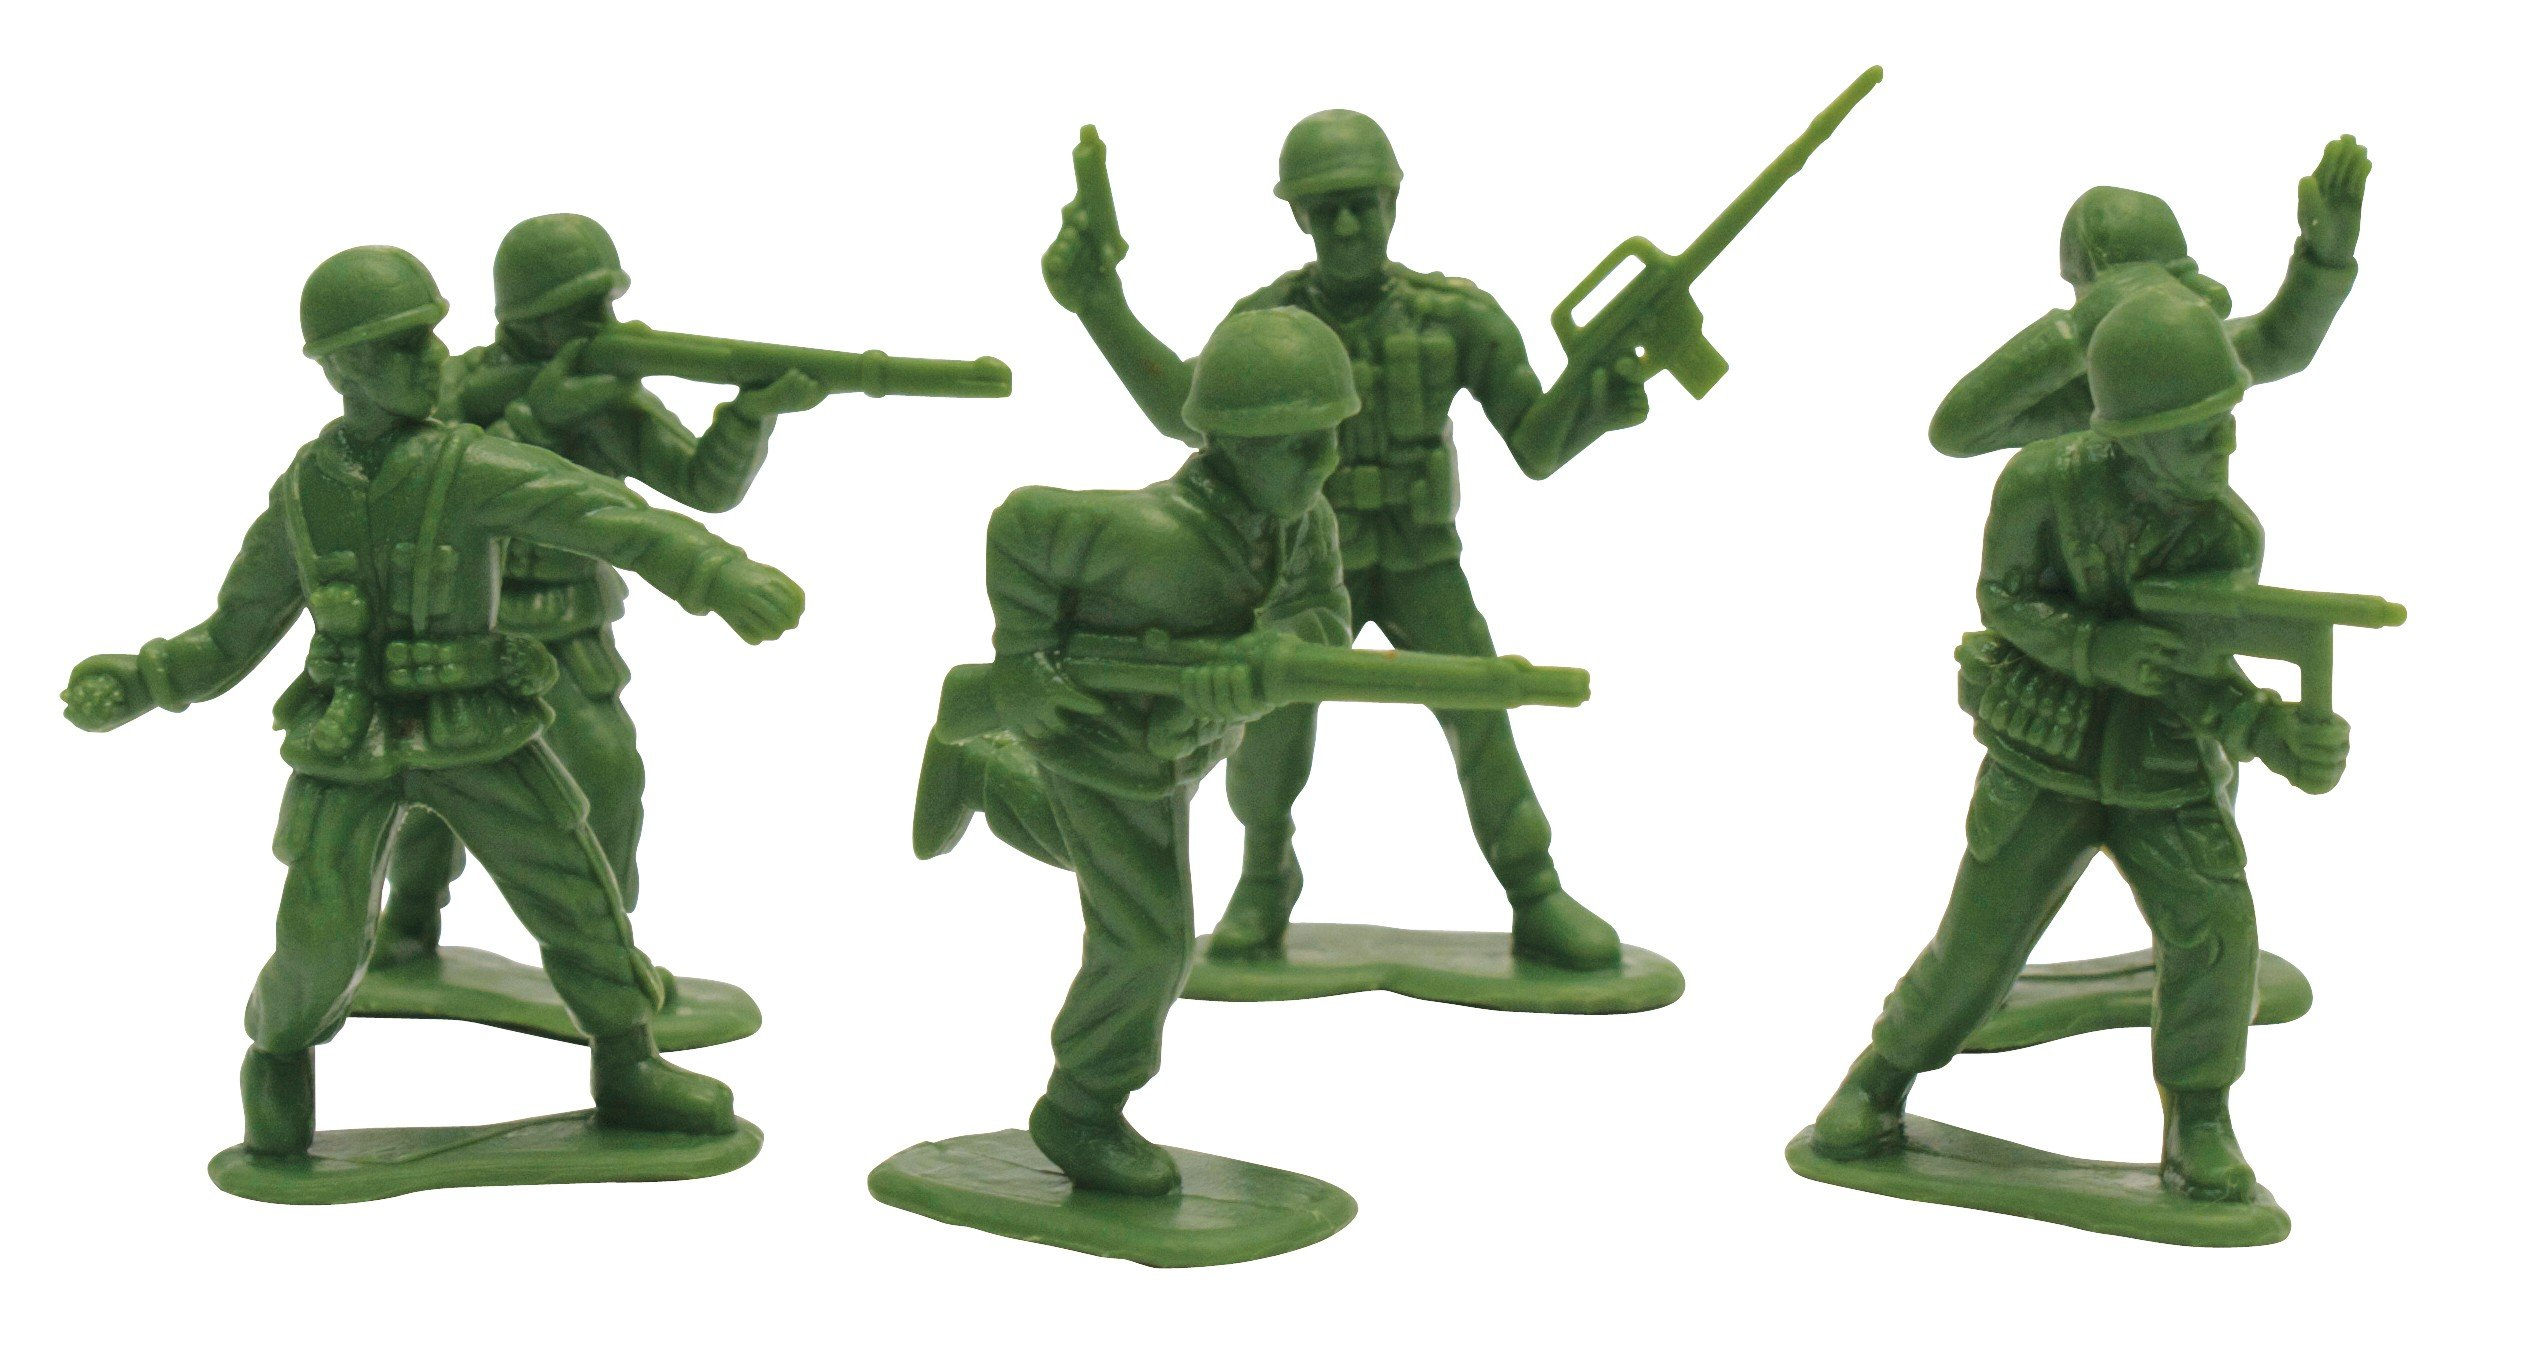 Green Army Men Toy Military Toys Soldier War Wallpaper   2544x1371